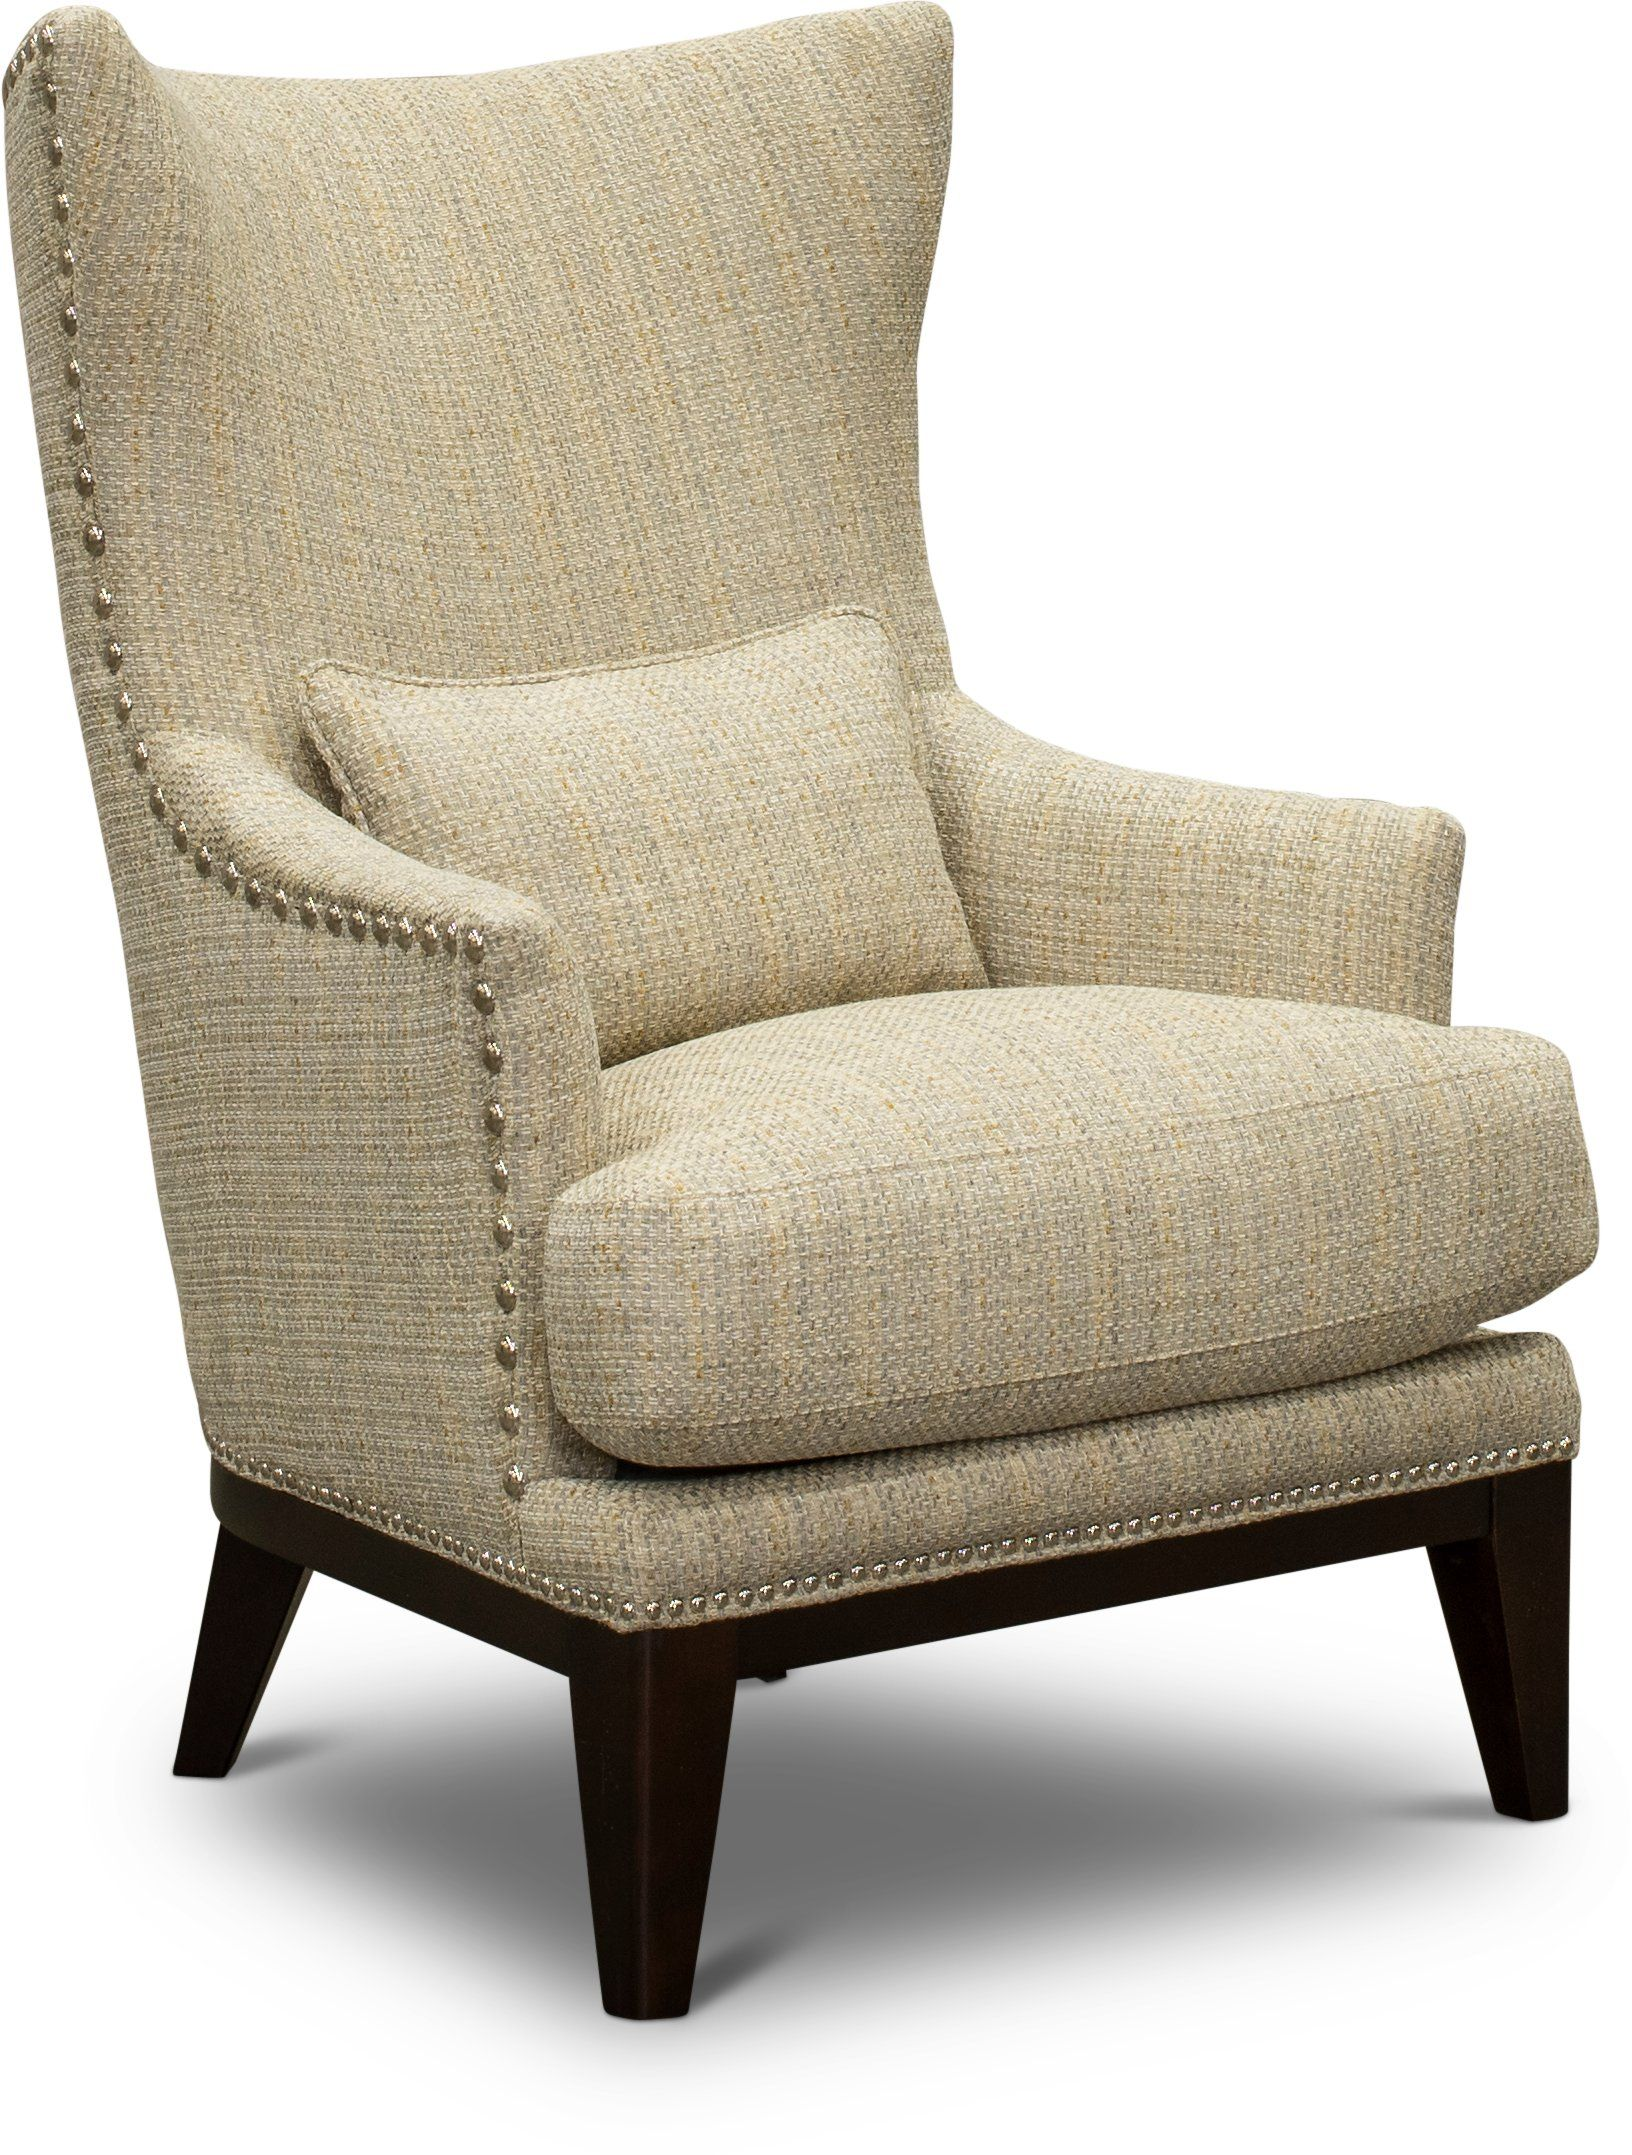 Classic Modern Tan And Gray Accent Chair Luxe Grey Accent